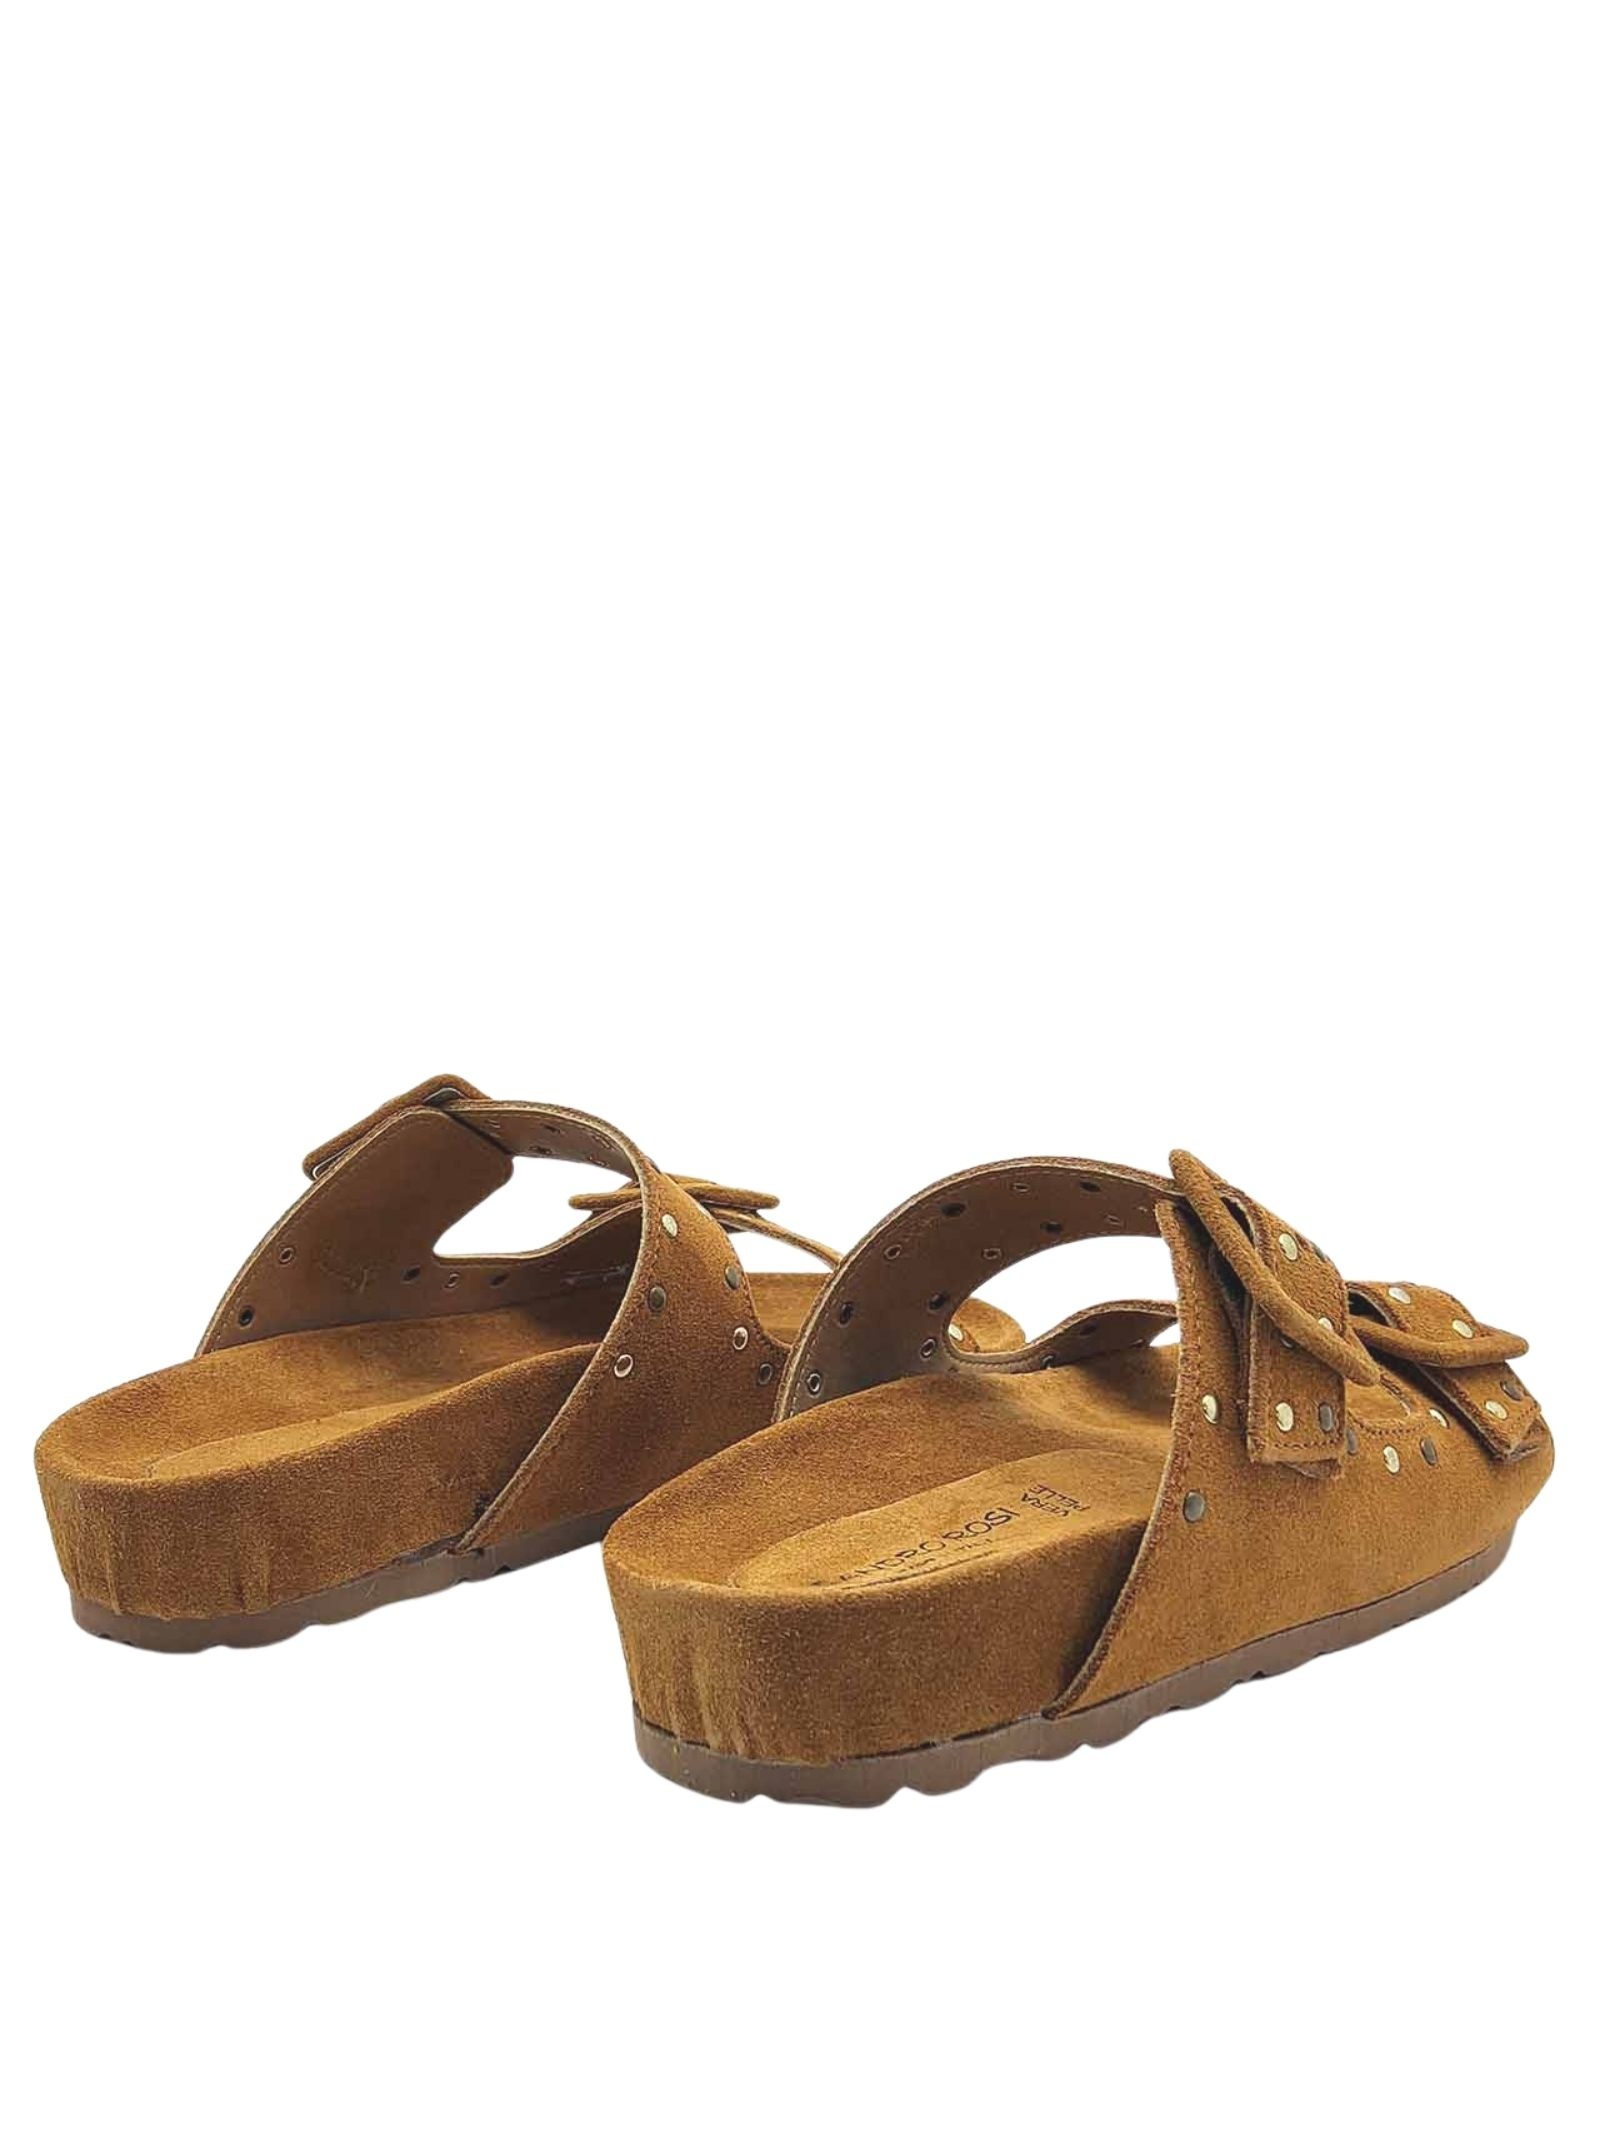 Sadali Birkenstock Women's Shoes in Leather Suede with Gold Studs and Rubber Sole Sandro Rosi | Flat sandals | 3335014